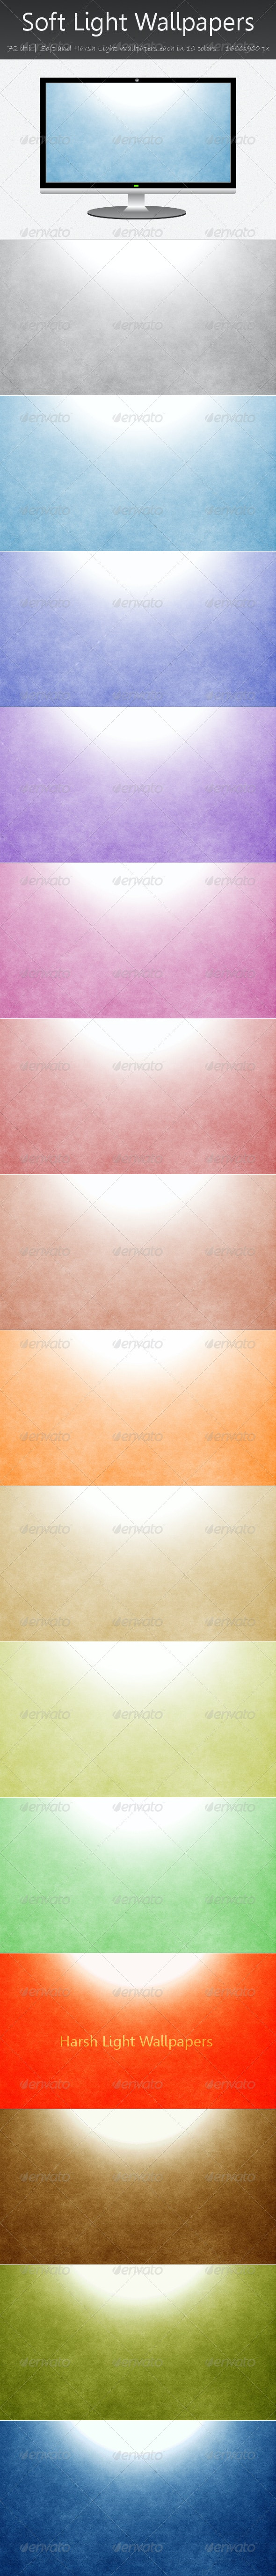 Soft Light Wallpapers - Abstract Backgrounds